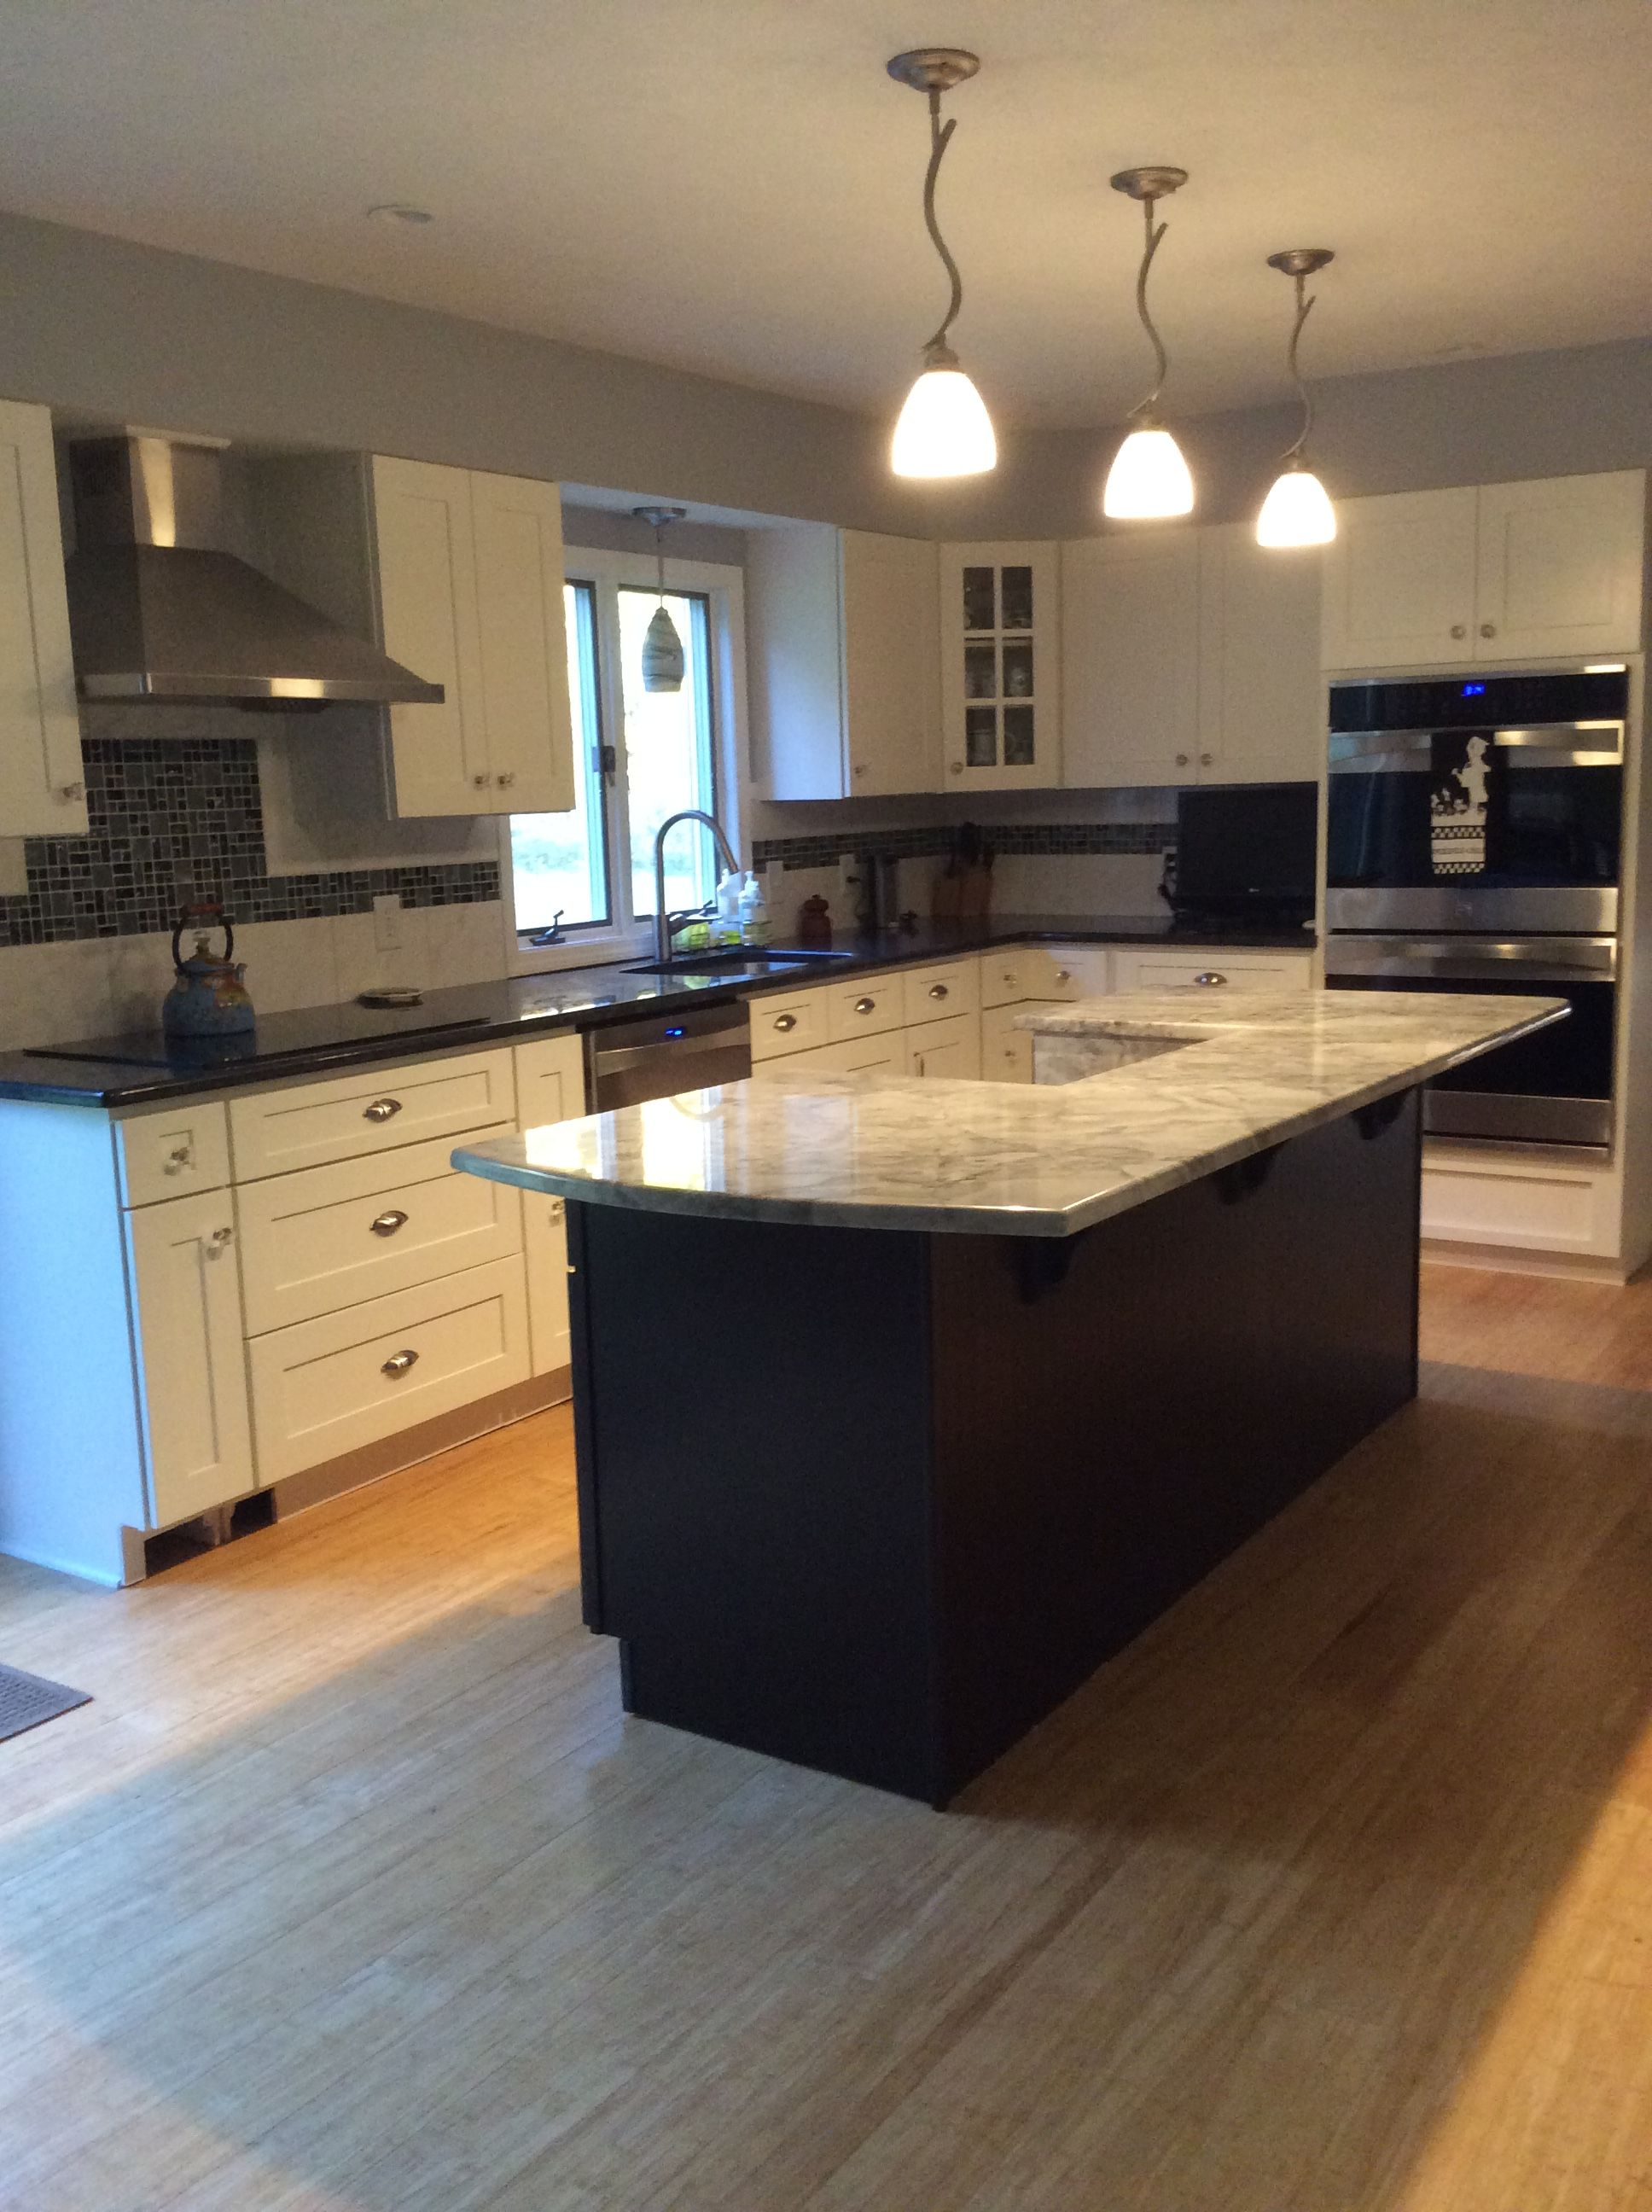 Worked With Manager Bruce Berean To Design Layout Of Kitchen Cabinets On  The Perimeter Of The